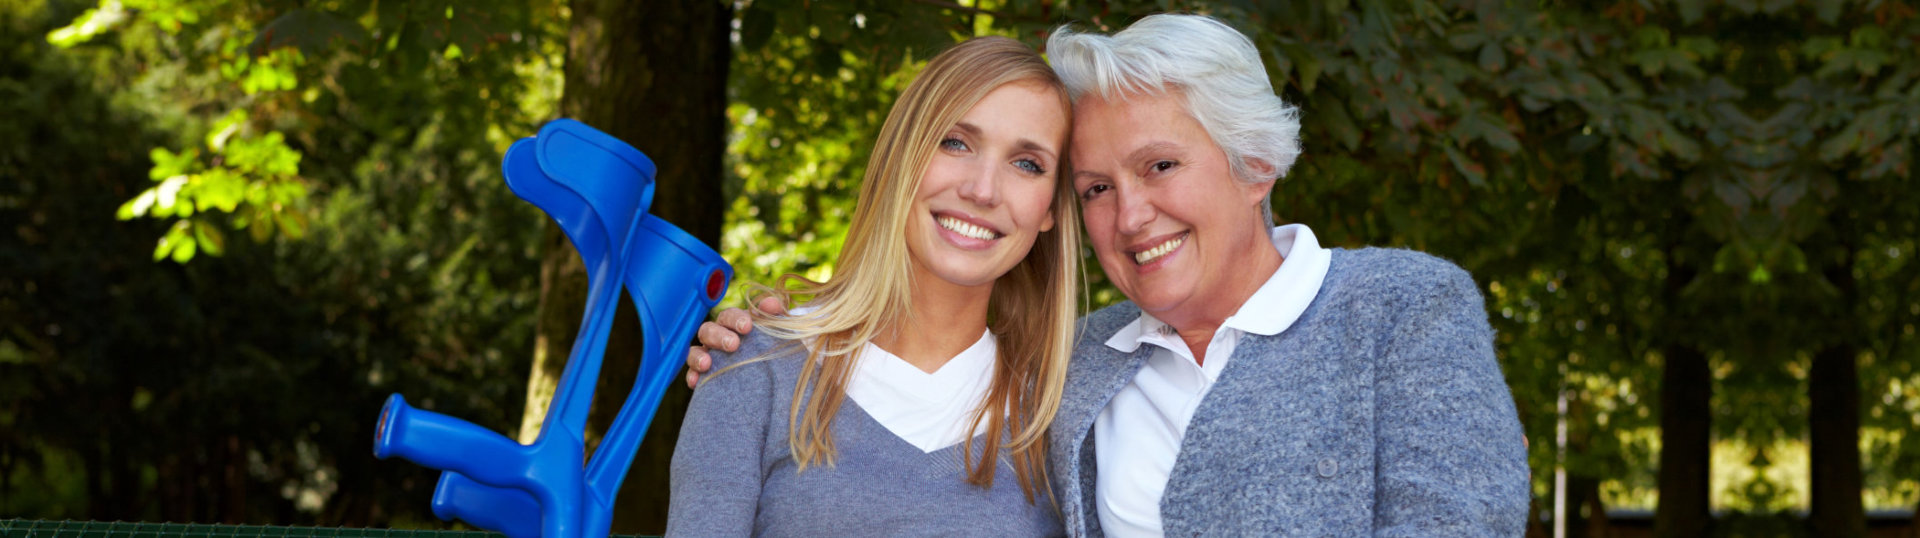 old woman with her caregiver smiling